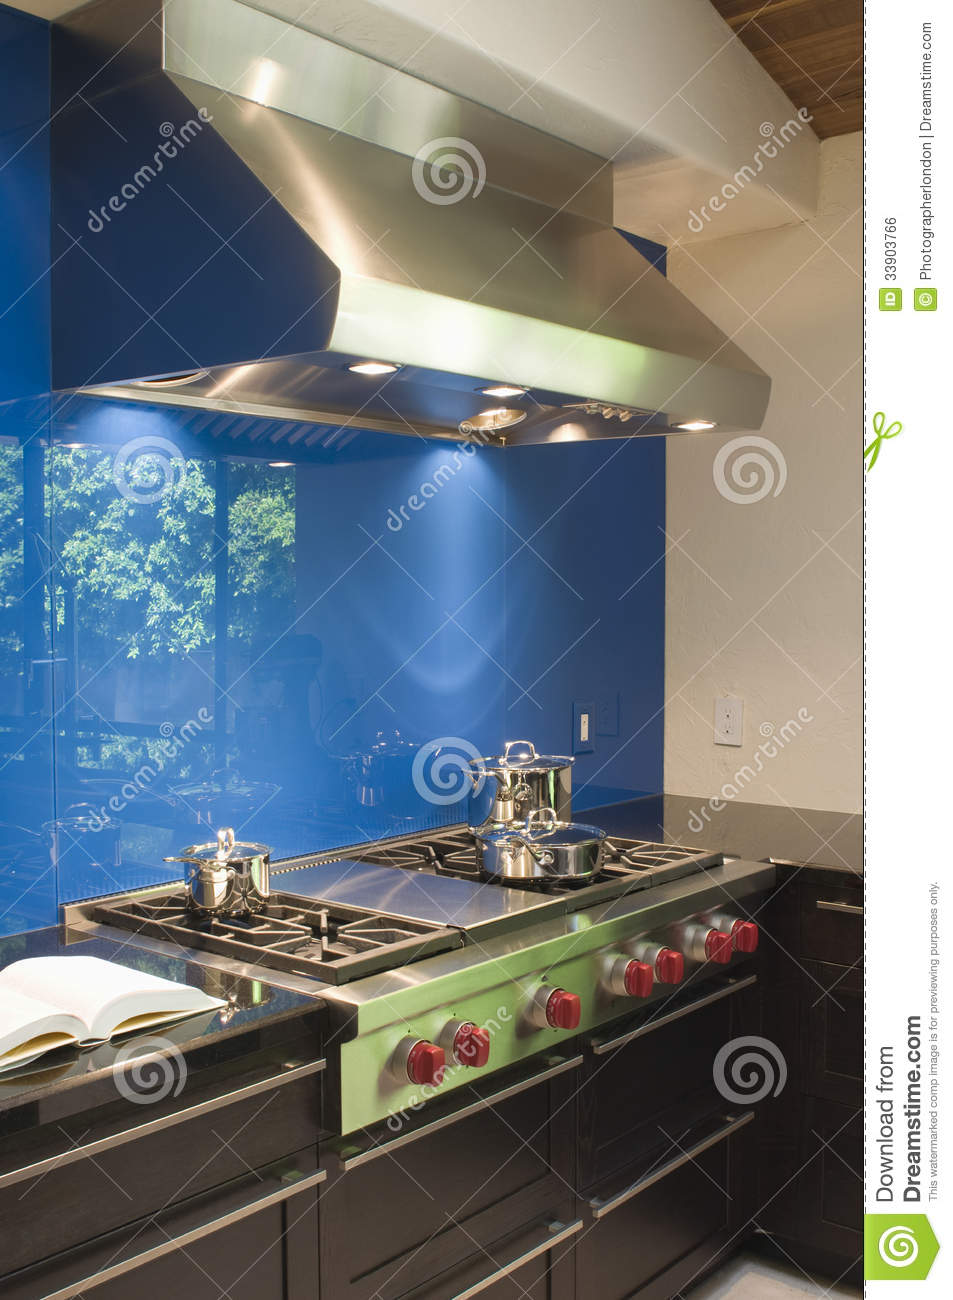 Blue Backsplash And Stainless Steel Vent Hood Stock Photo - Image of ...